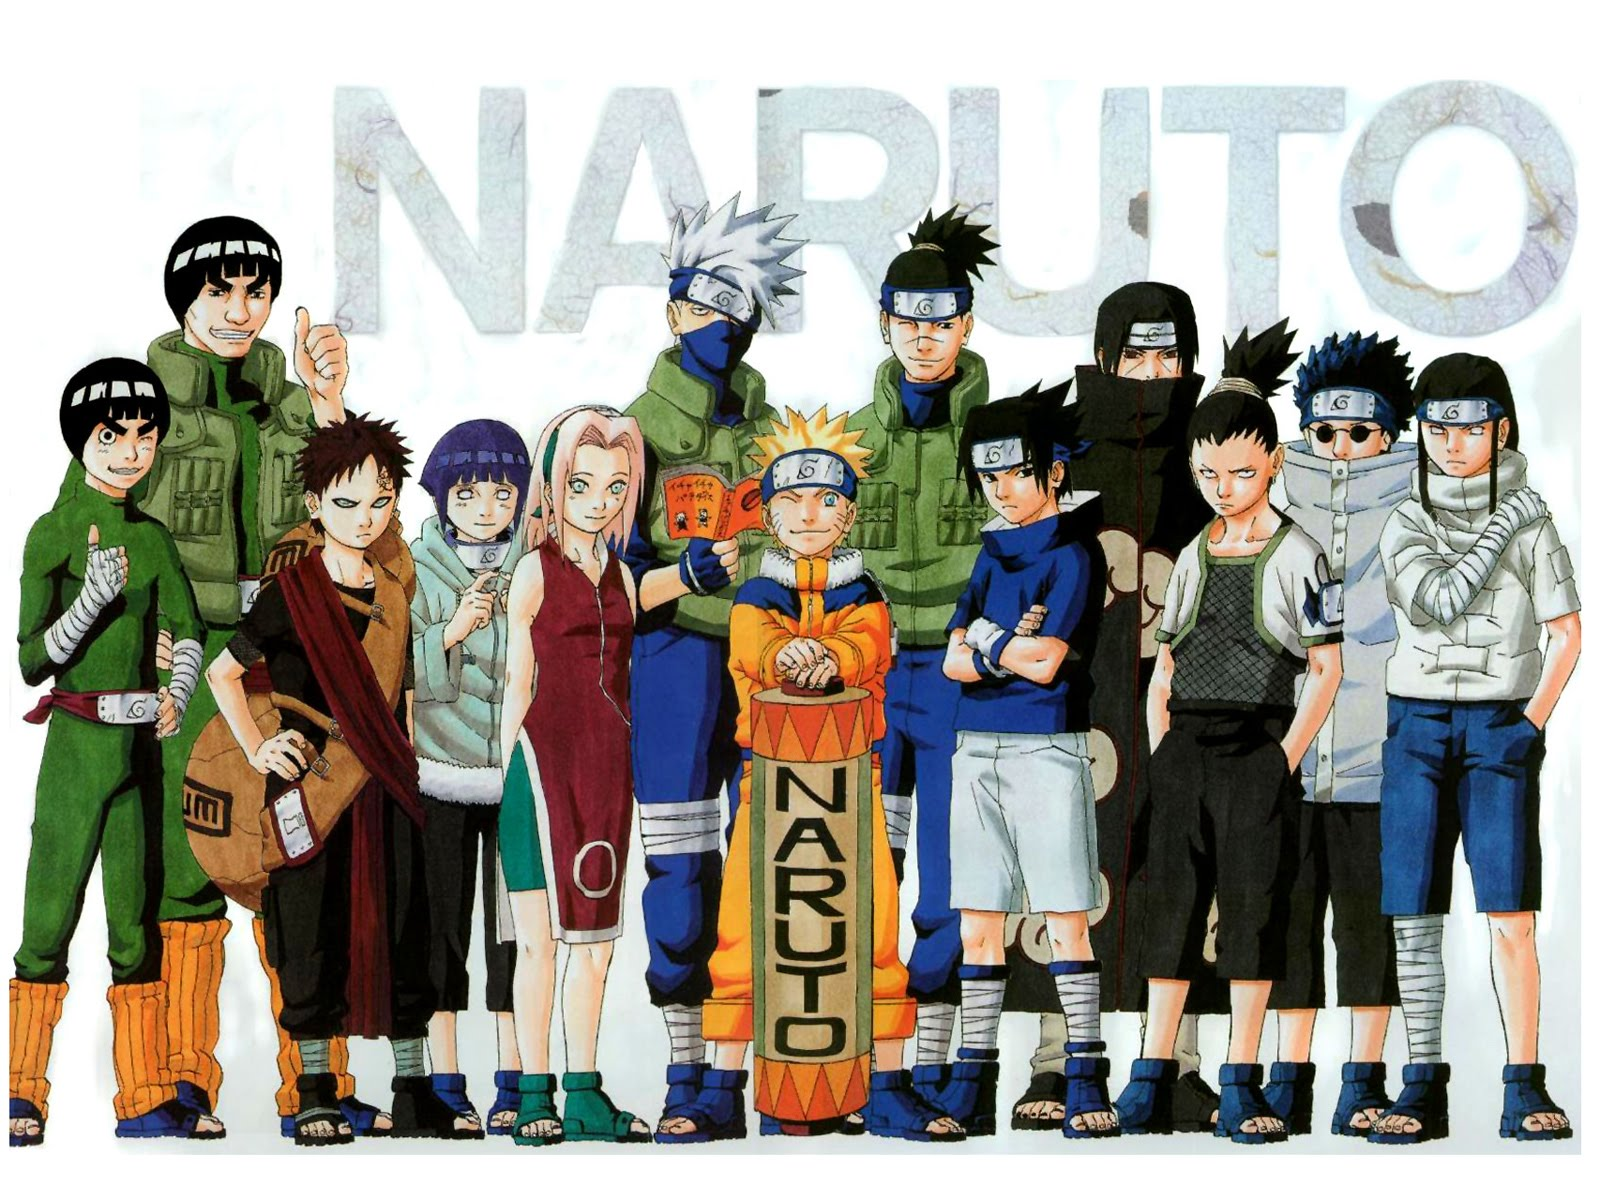 Anime Characters From Naruto : All naruto character anime wallpaper